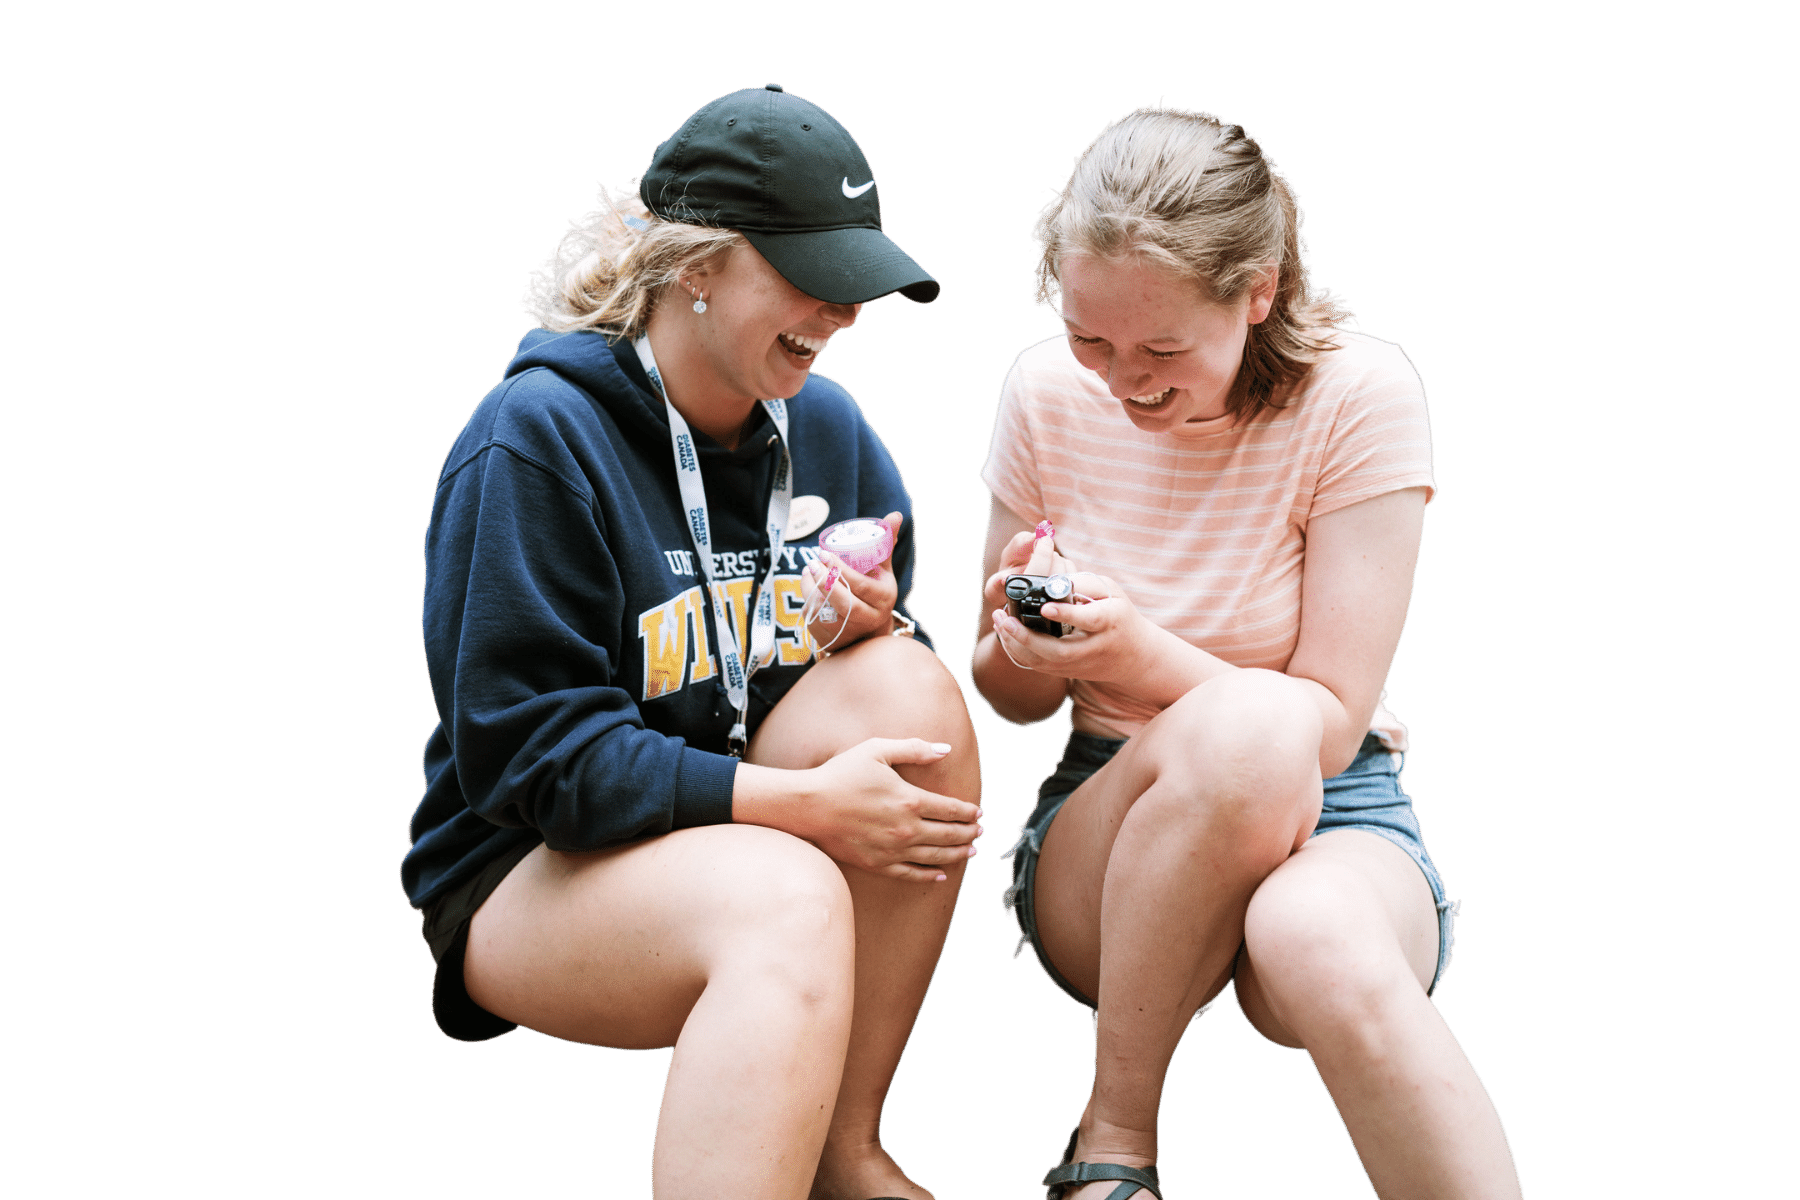 type 1 diabetes d-camps